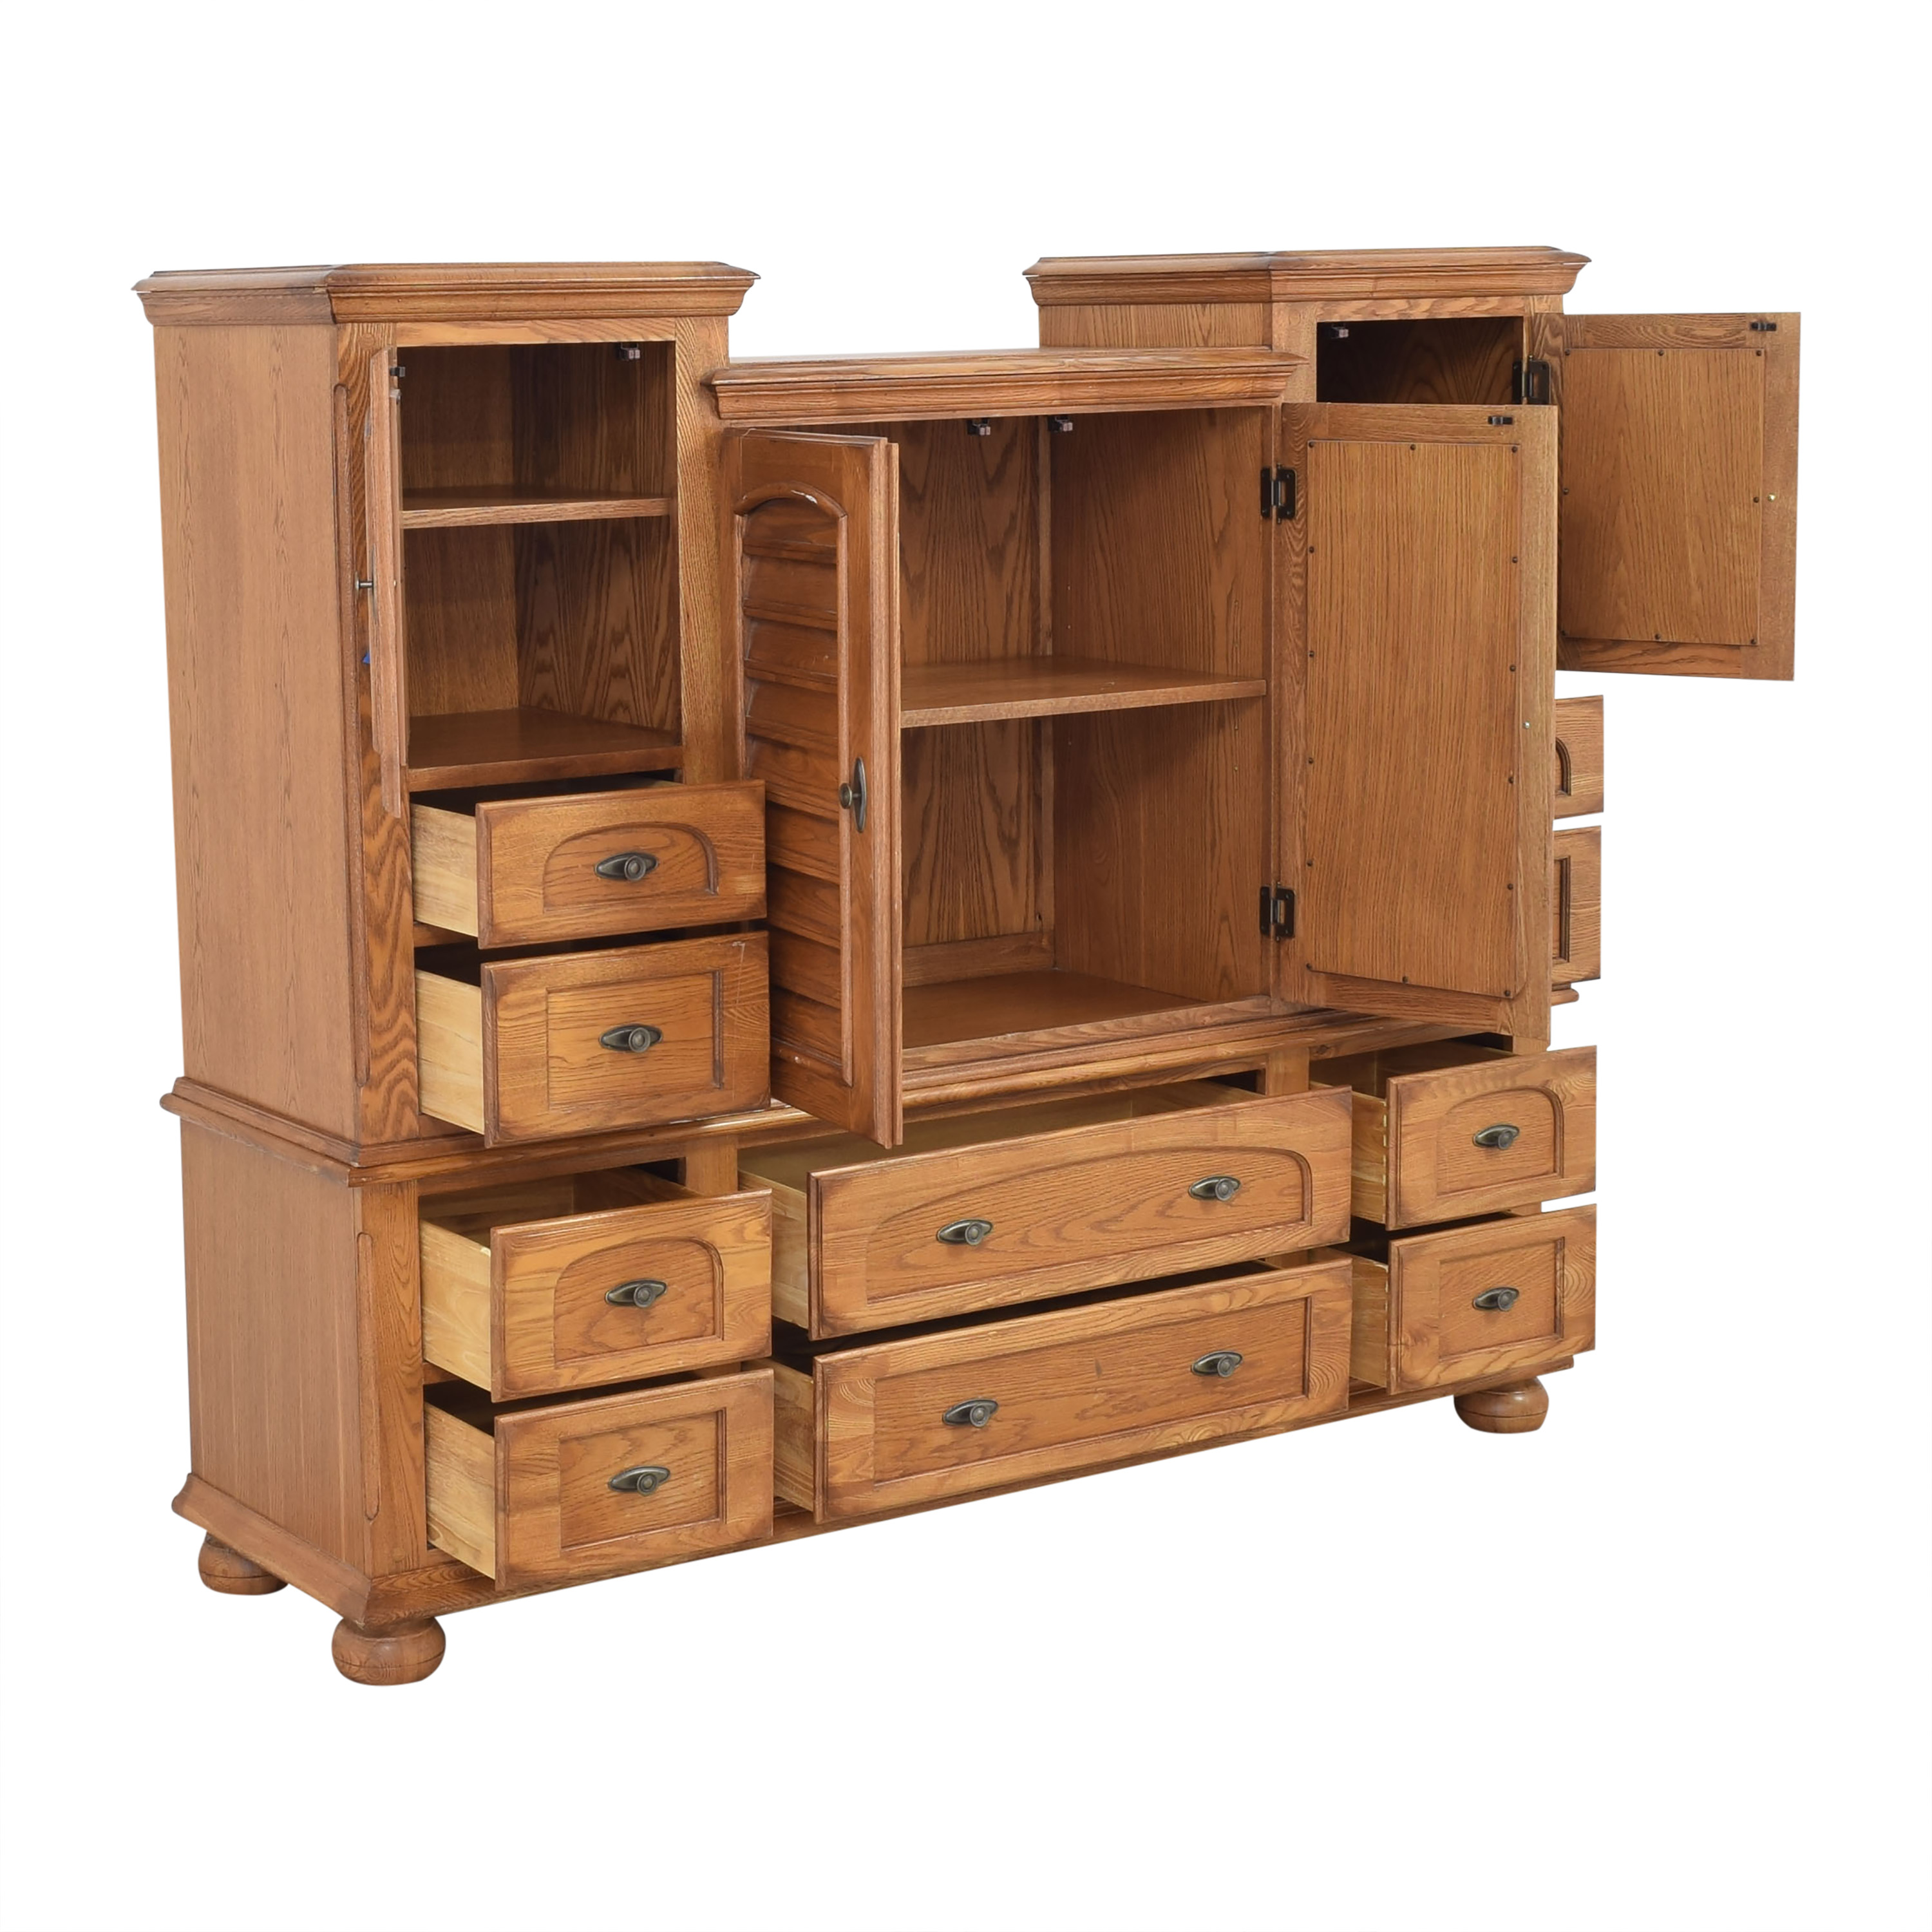 Gothic Cabinet Craft Gothic Cabinet Craft Wall Storage System Cabinets & Sideboards